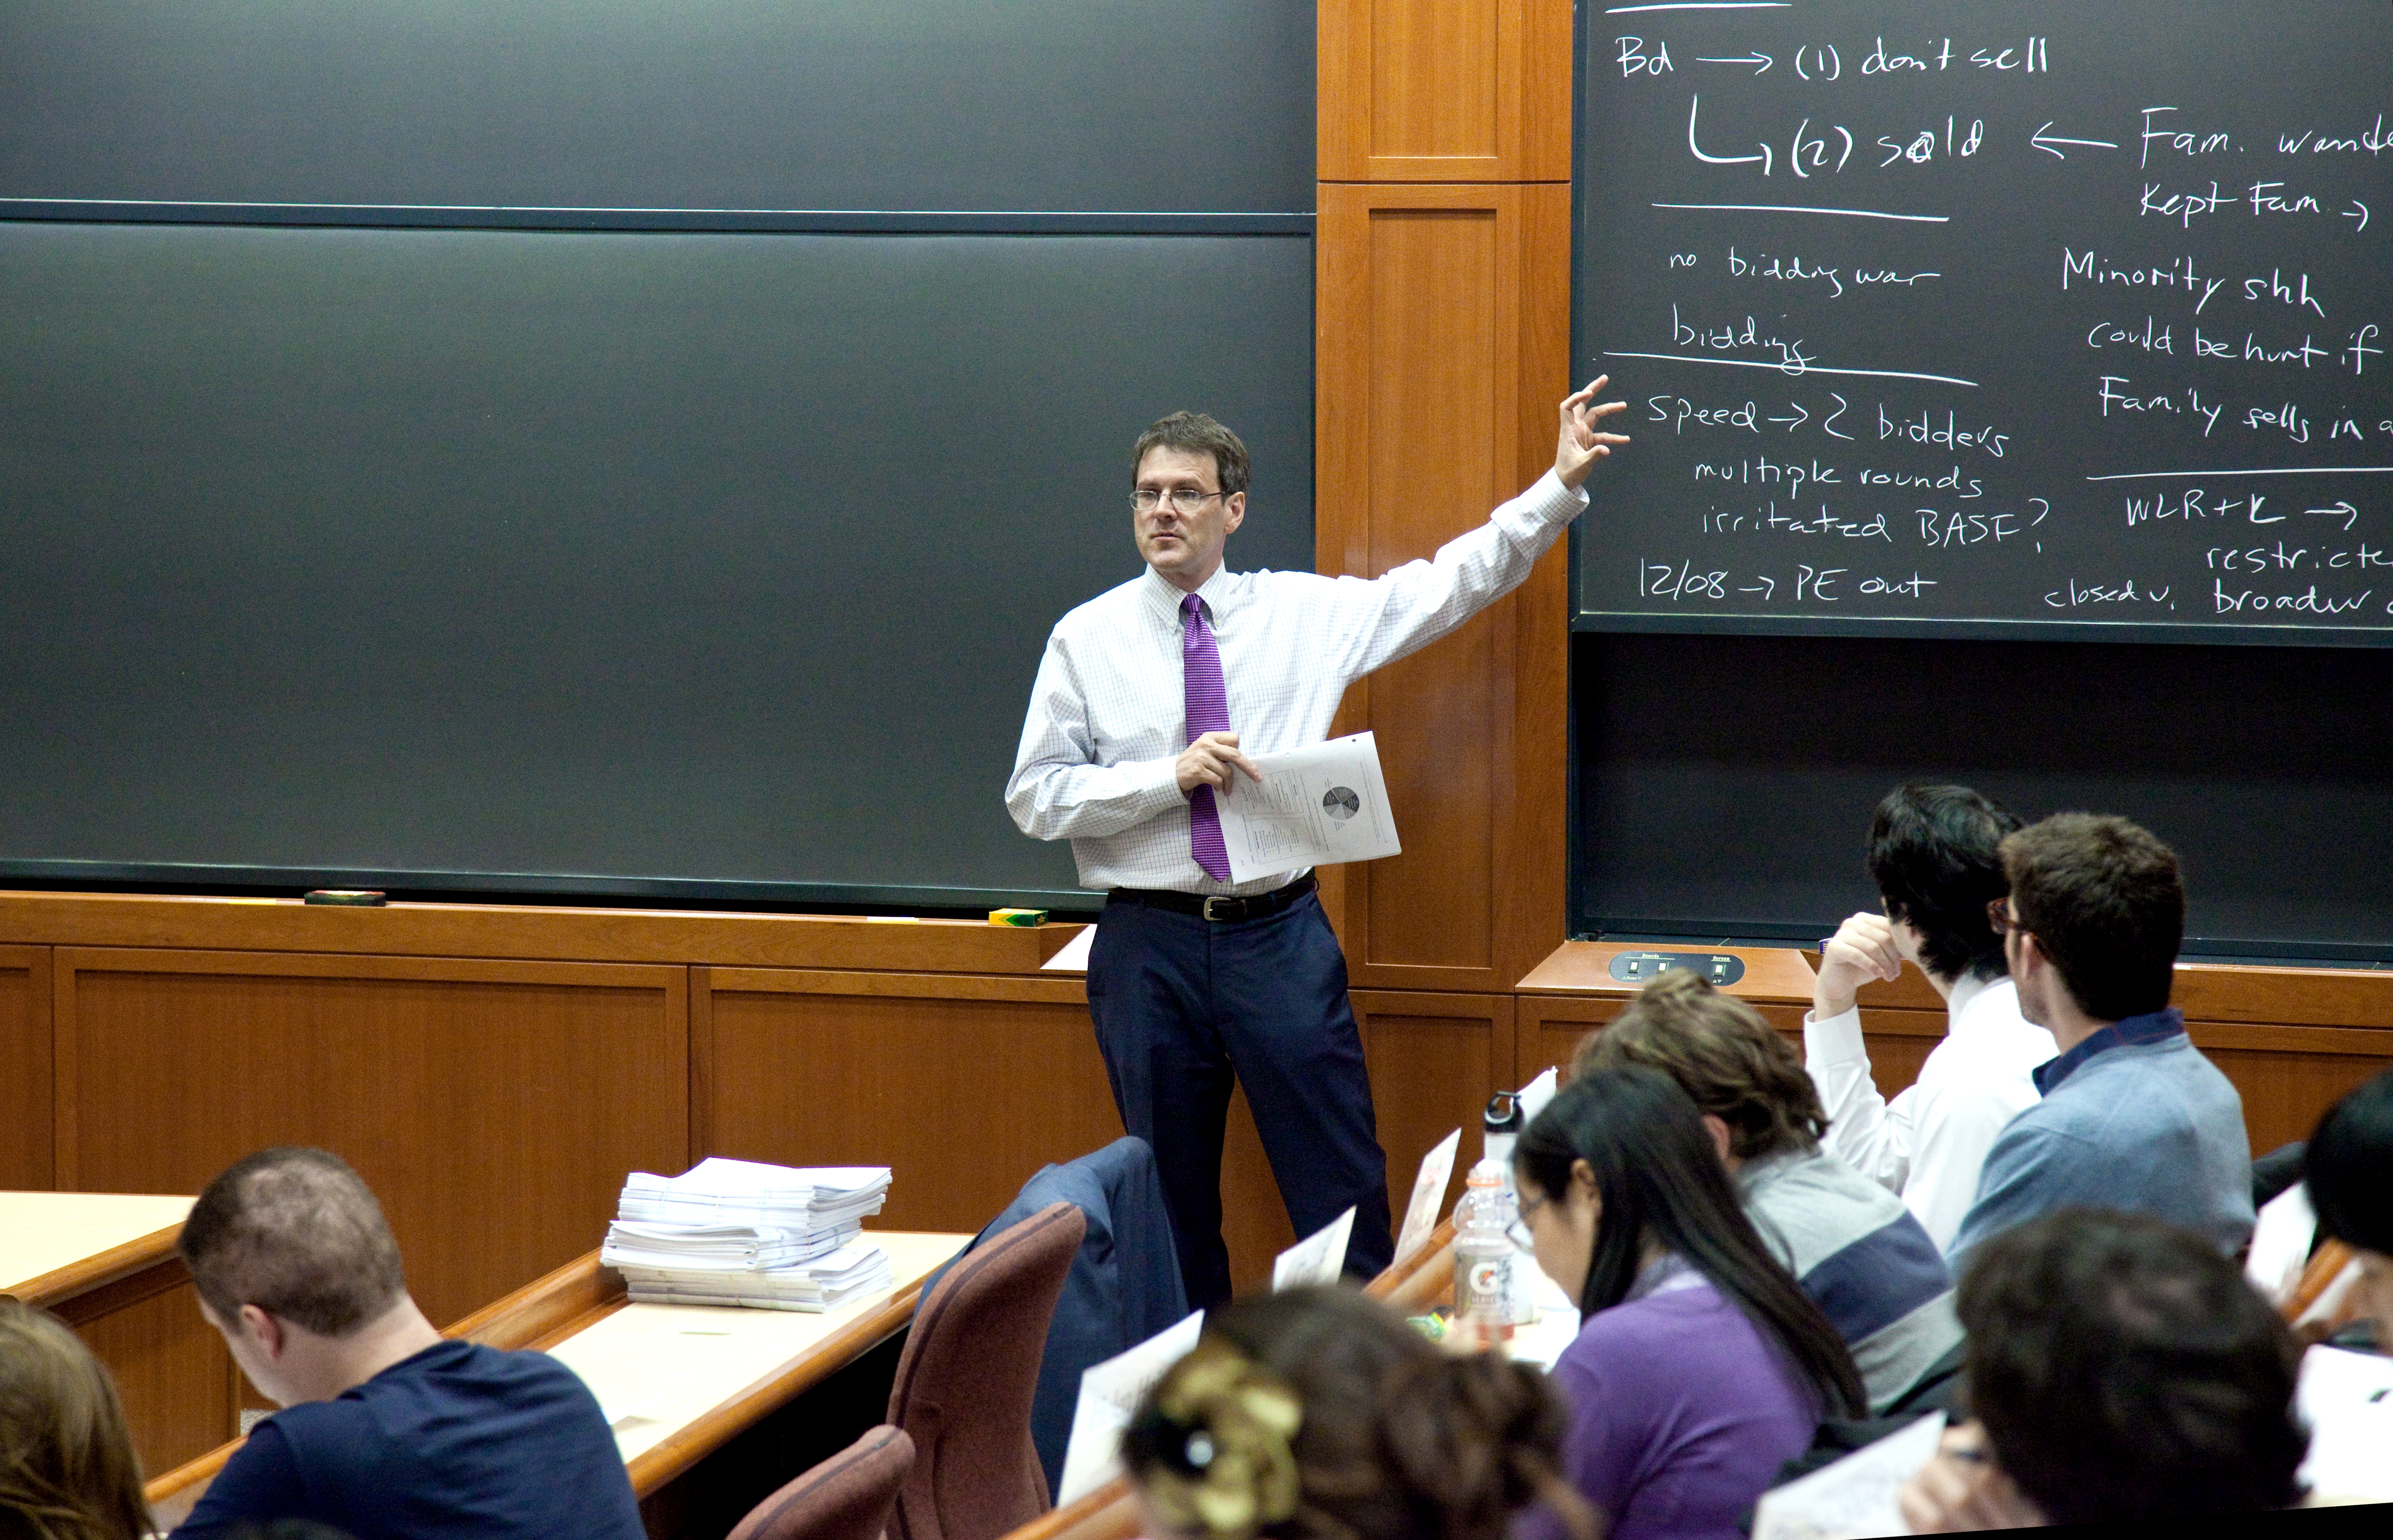 Professor John Coates lecturing to his class at the blackboard